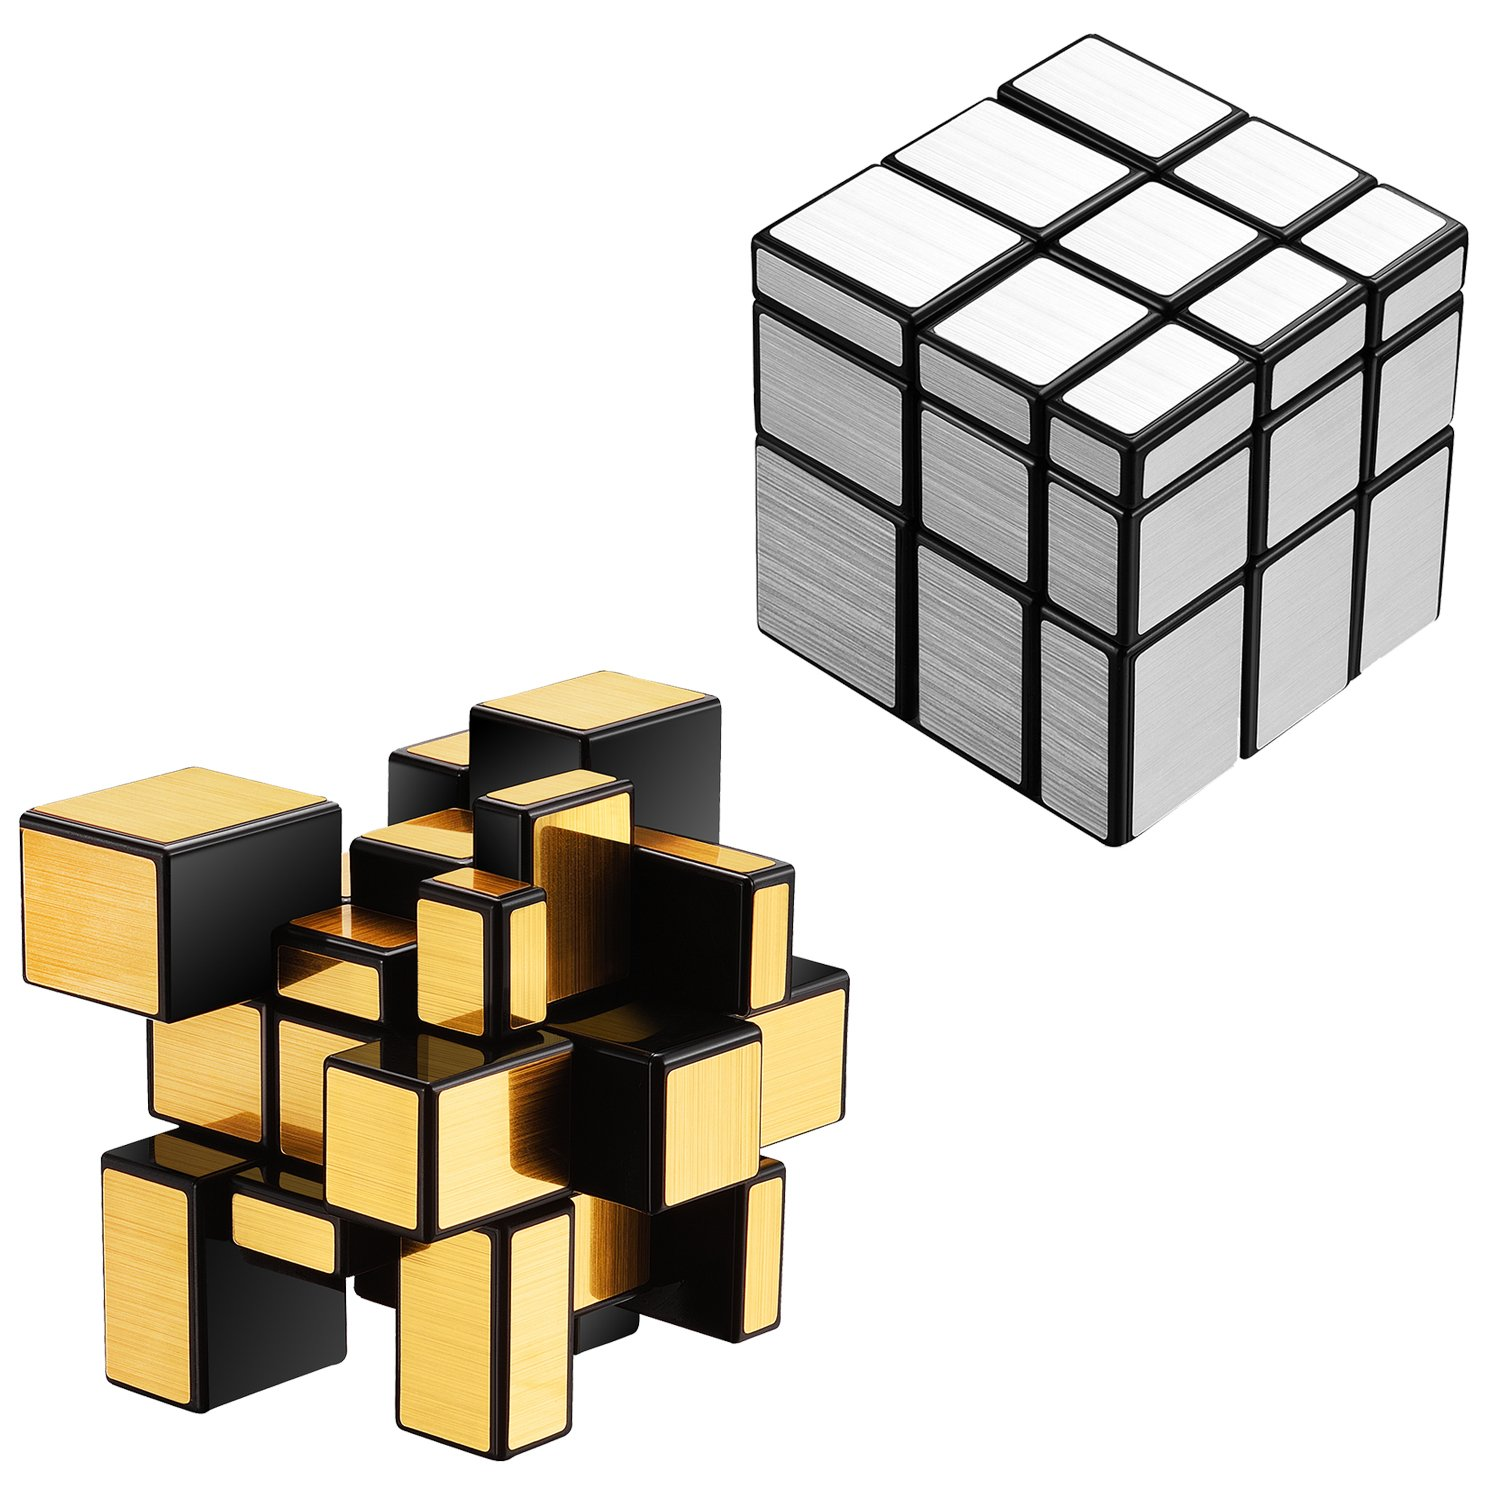 Mirror Speed Cube Puzzle 3x3x3 Gold and Silver Mirror Magic Cube Set 2 Pack for Kids by Ganowo